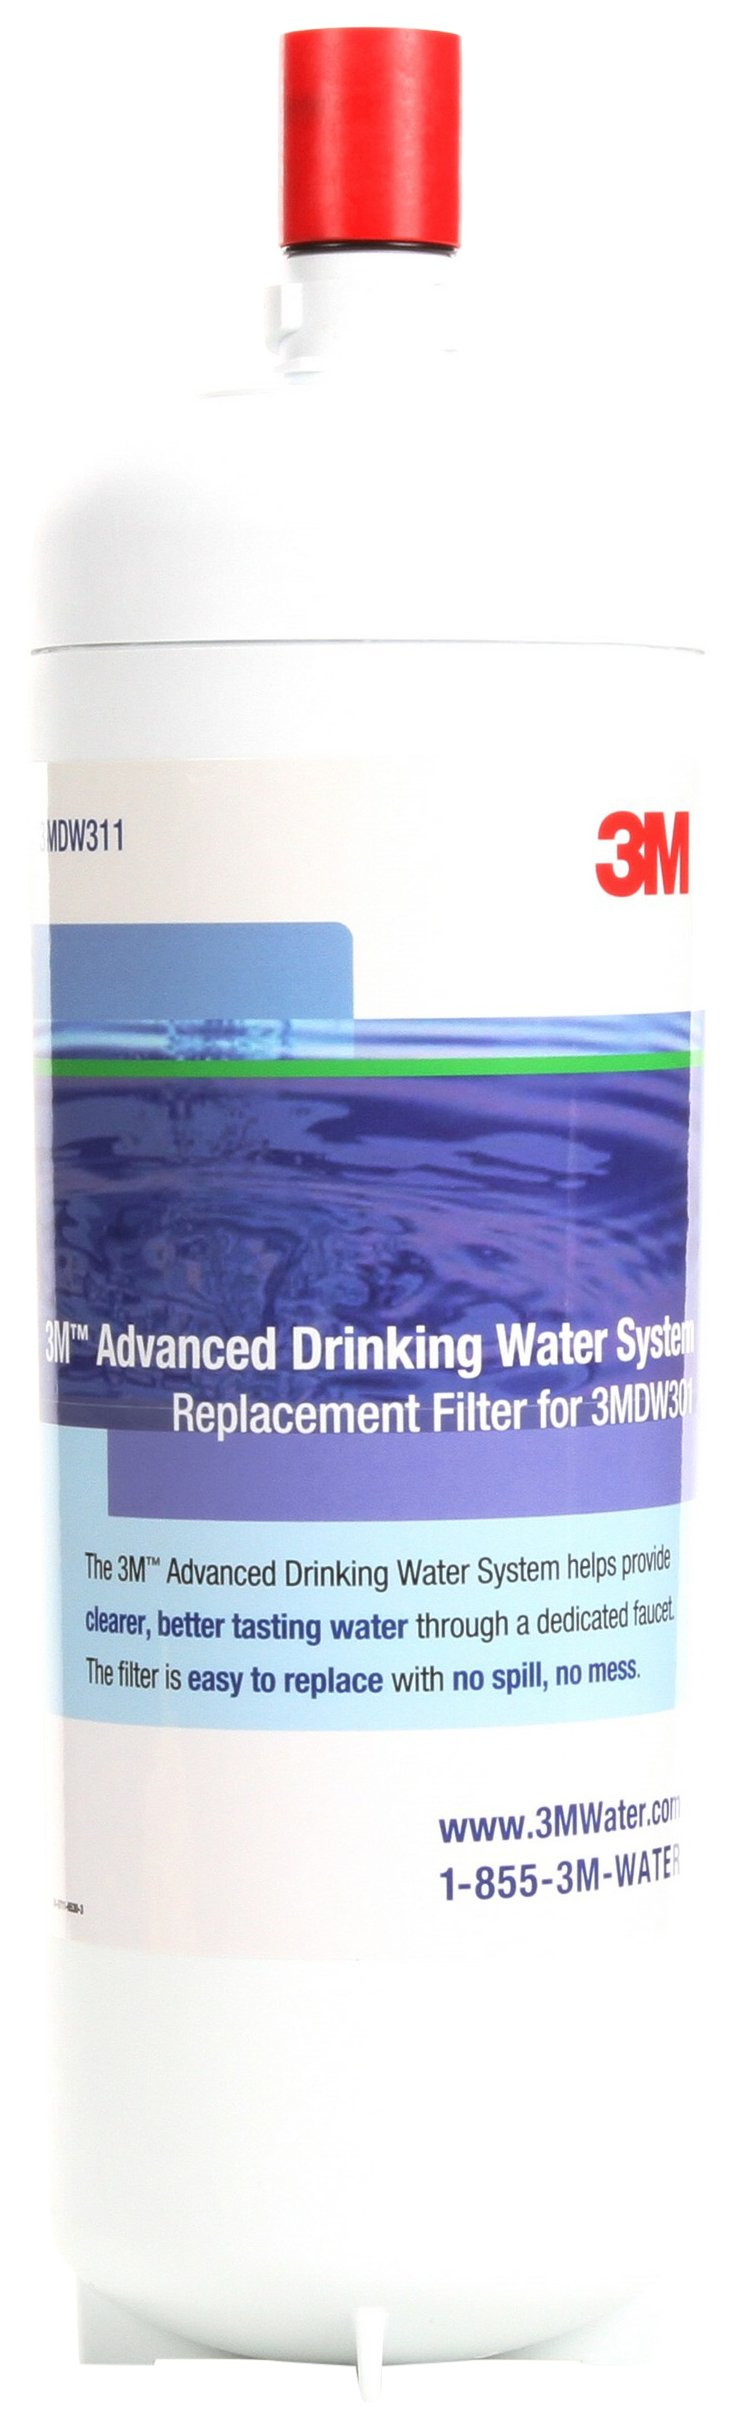 3M 23194 3MDW311-01 Replacement Filter Cartridge for Drinking Water System